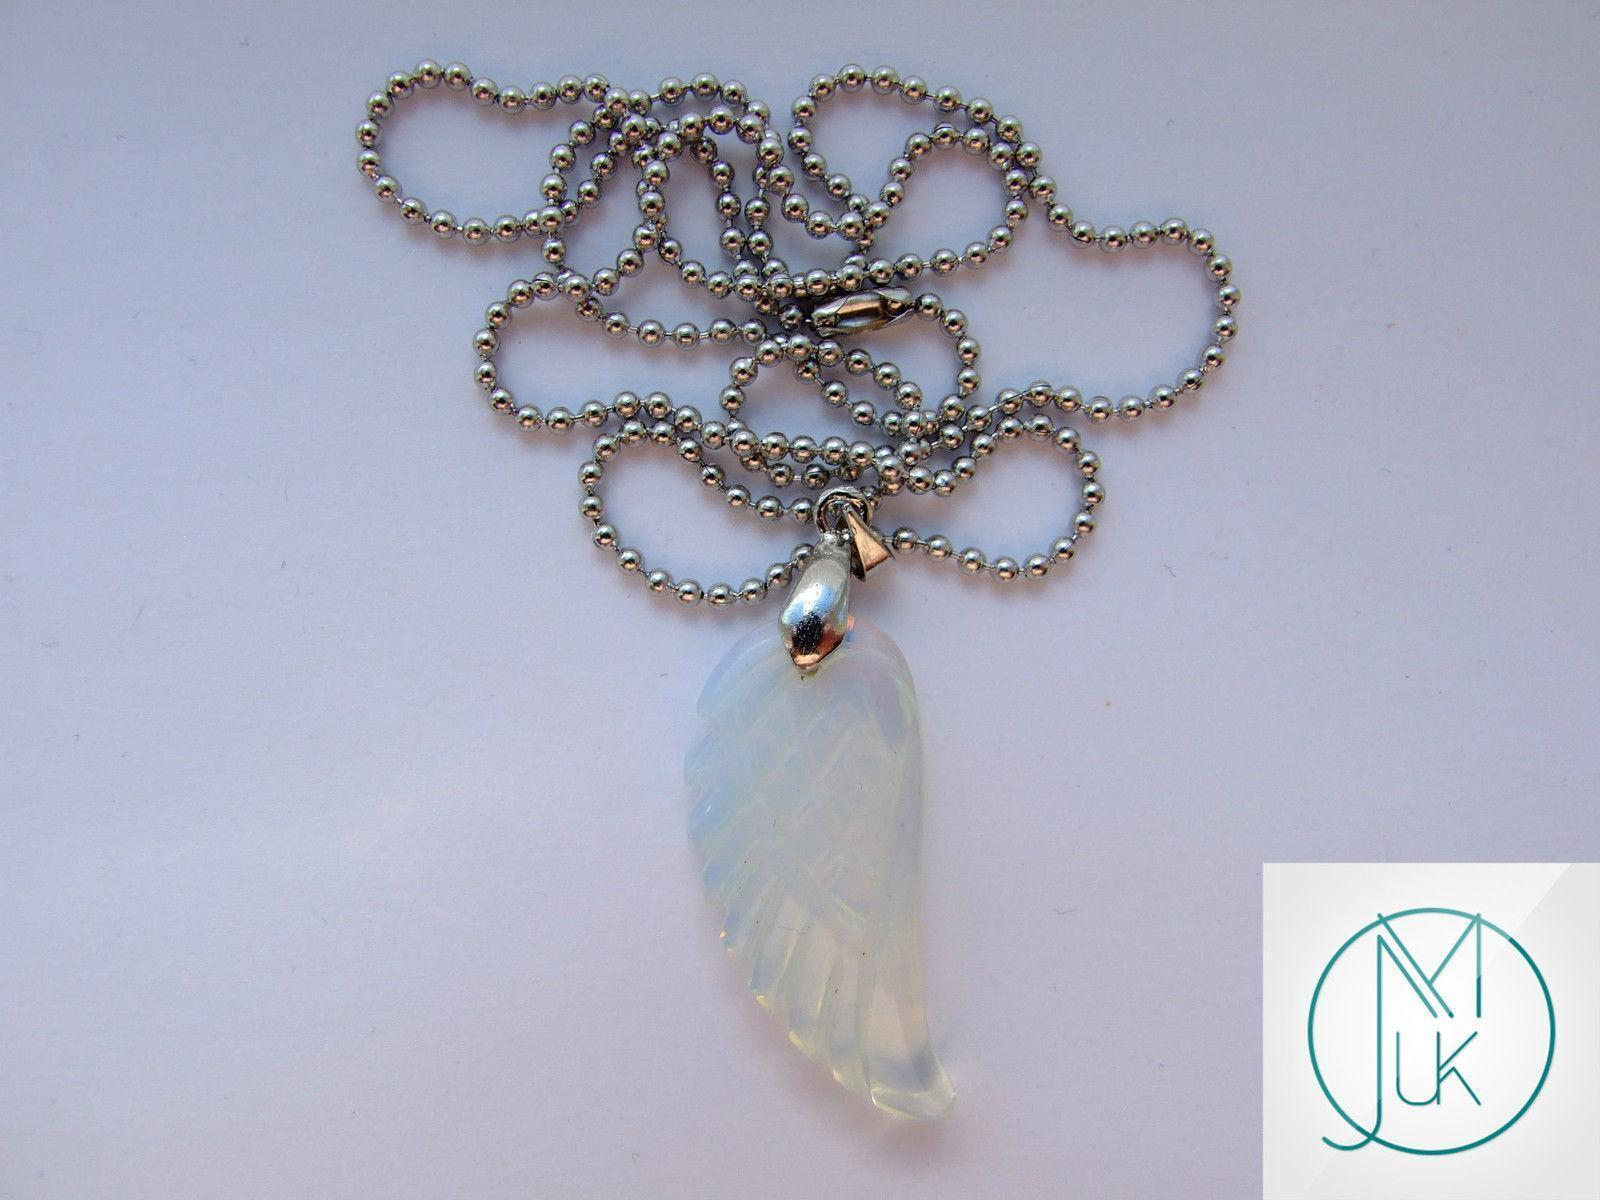 Opalite Manmade Gemstone Angel Wing Pendant Necklace